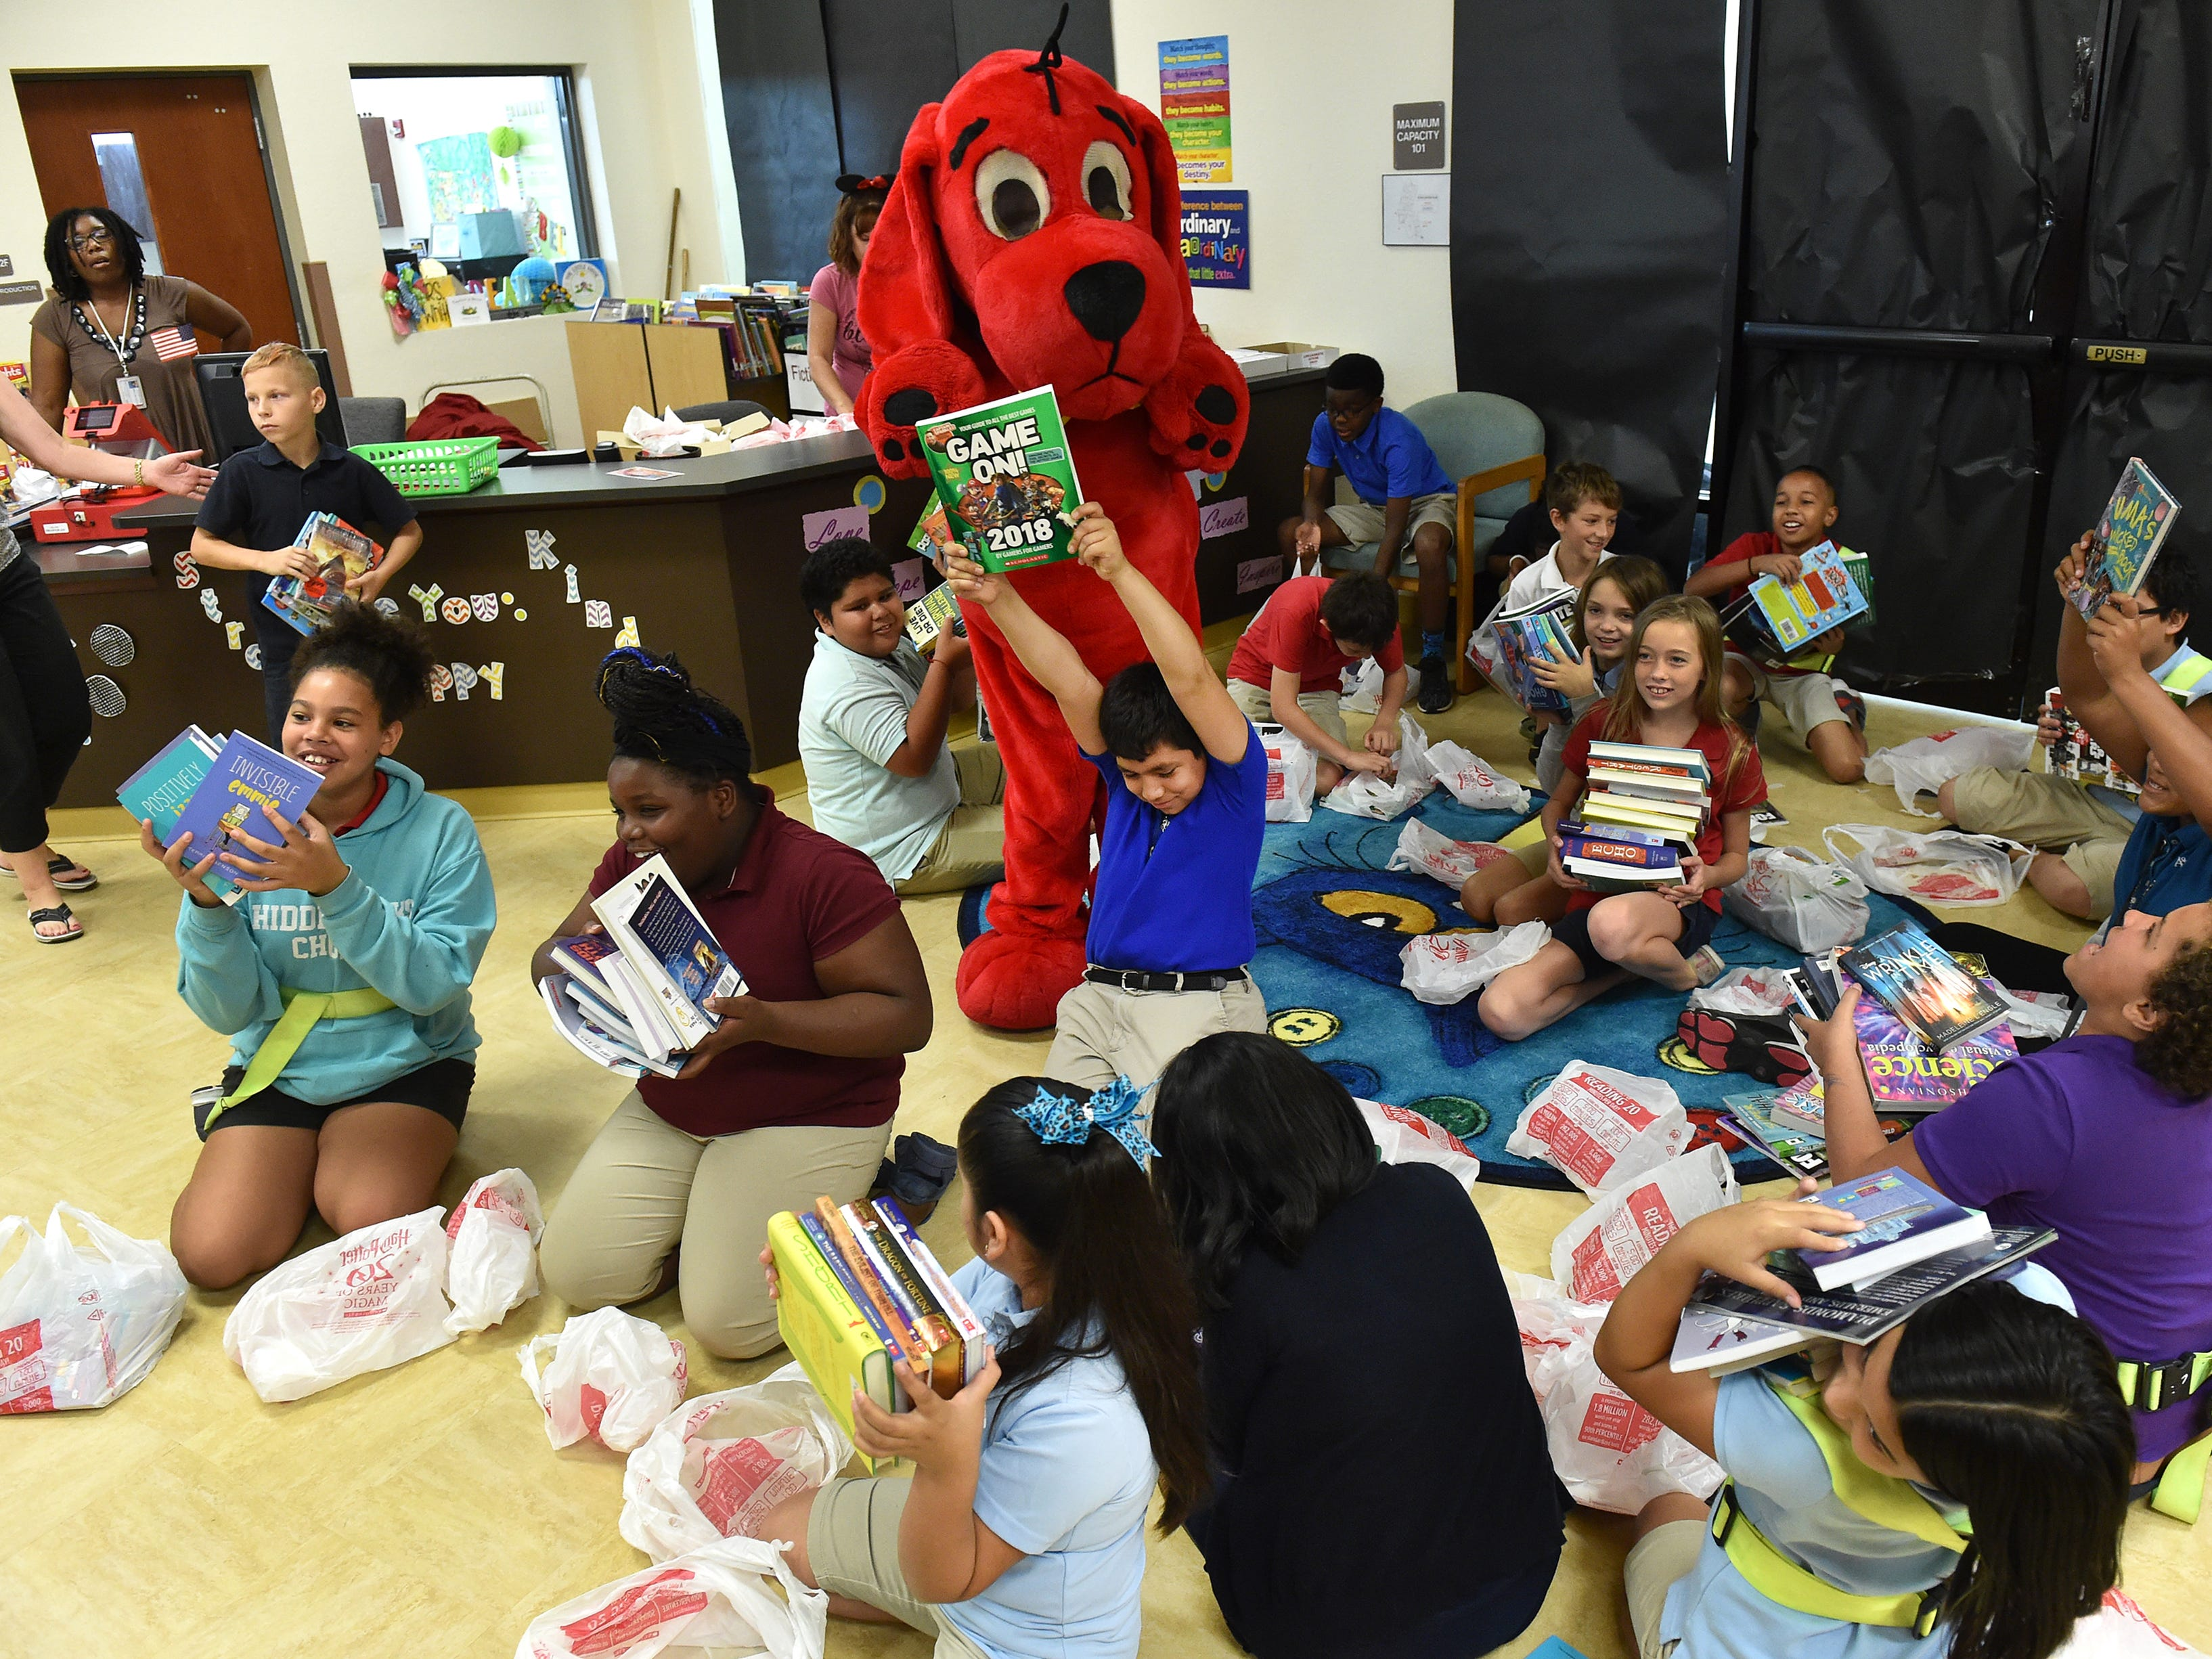 """""""I like it, I'm happy, because I got eleven free books,"""" said Juan Romero, 11, (center) holding up one of his selections as he and his fifth grade classmates celebrate selecting eleven new books each from among hundreds of titles during Vero Beach Elementary School's Scholastic Book Magic event on Monday, October 1, 2018. """"We're going to be going through about 8,000 books by the time we're done with this week,"""" said Cindy Emerson, Principal at Vero Beach Elementary. """"Every single kid is going to get eleven books to take home... what they want, what they choose, based on their interests, kindergarten through fifth grade."""""""